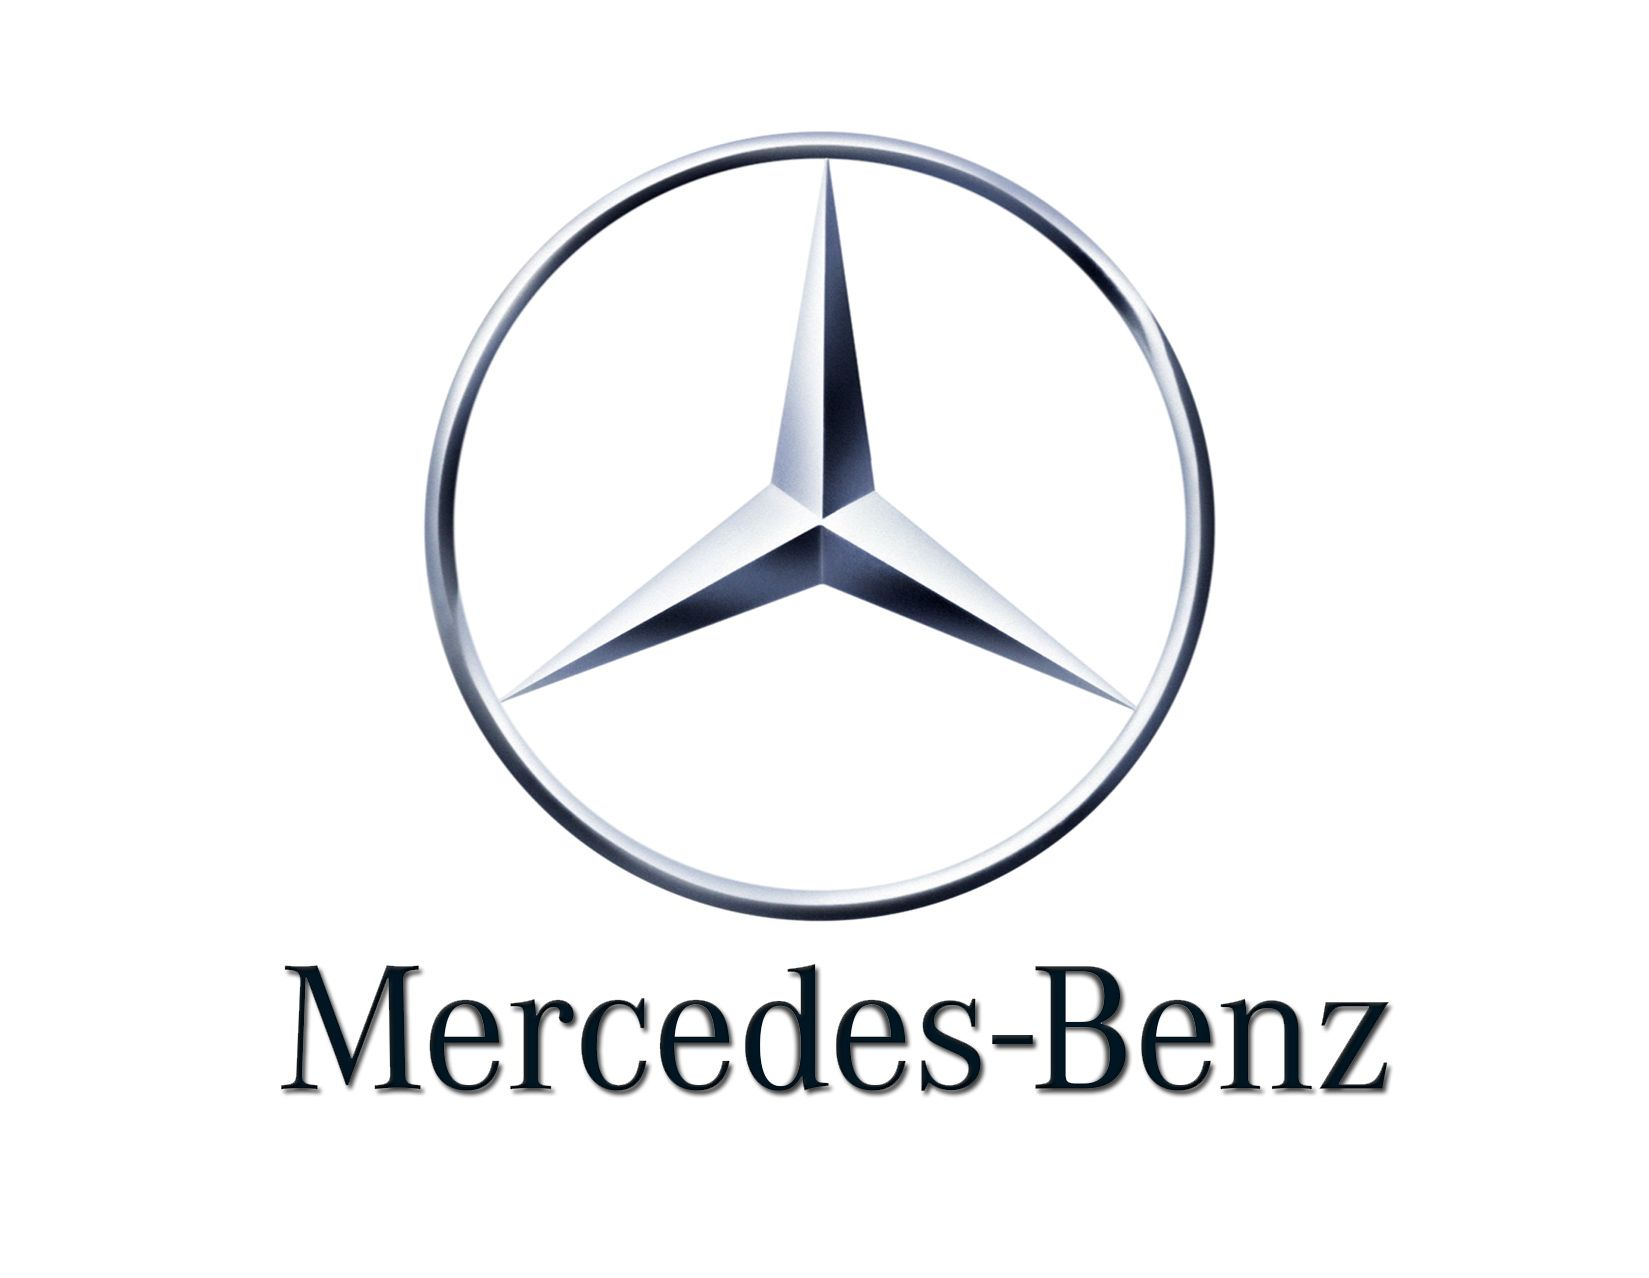 recommended tire inflation pressure for mercedes benz tires mercedes benz tire pressure guides calculators charts forums tools and accessories